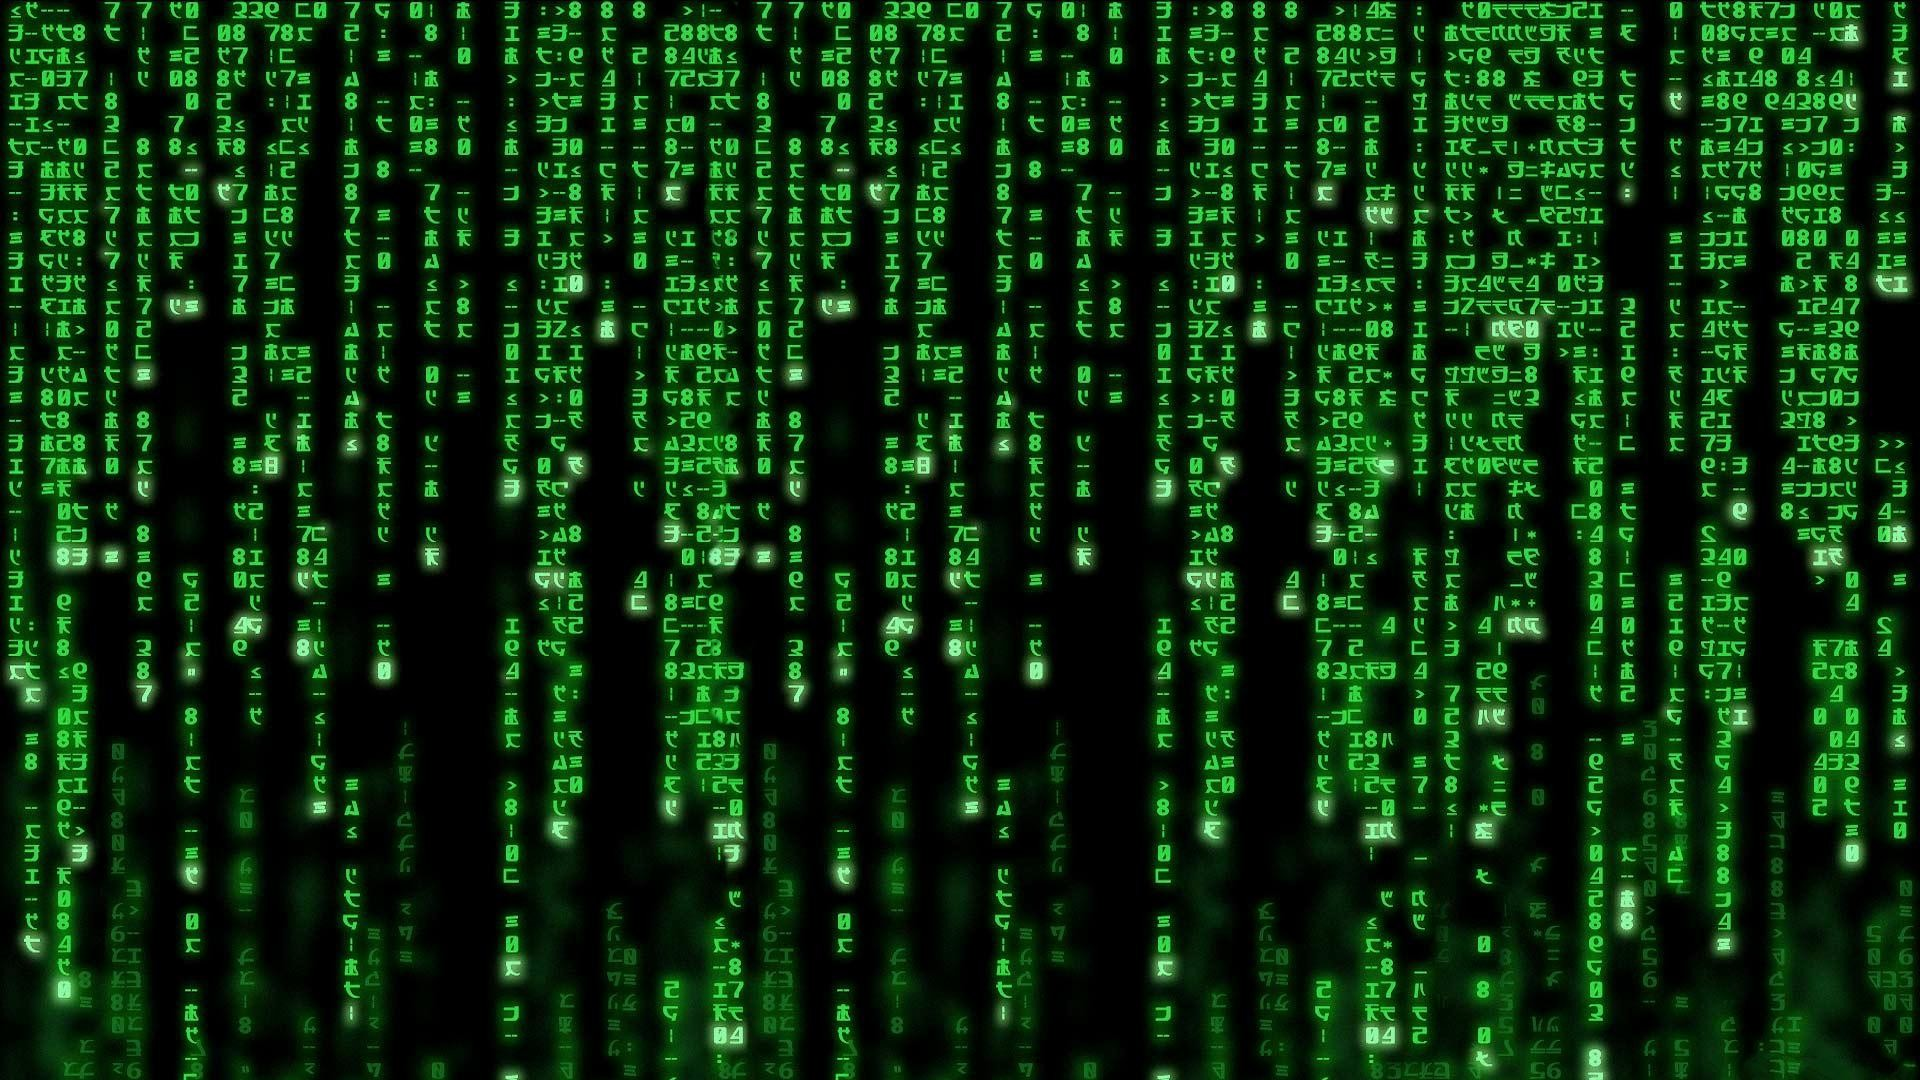 wallpaper.wiki-Download-Free-Animated-Matrix-Wallpaper-PIC-